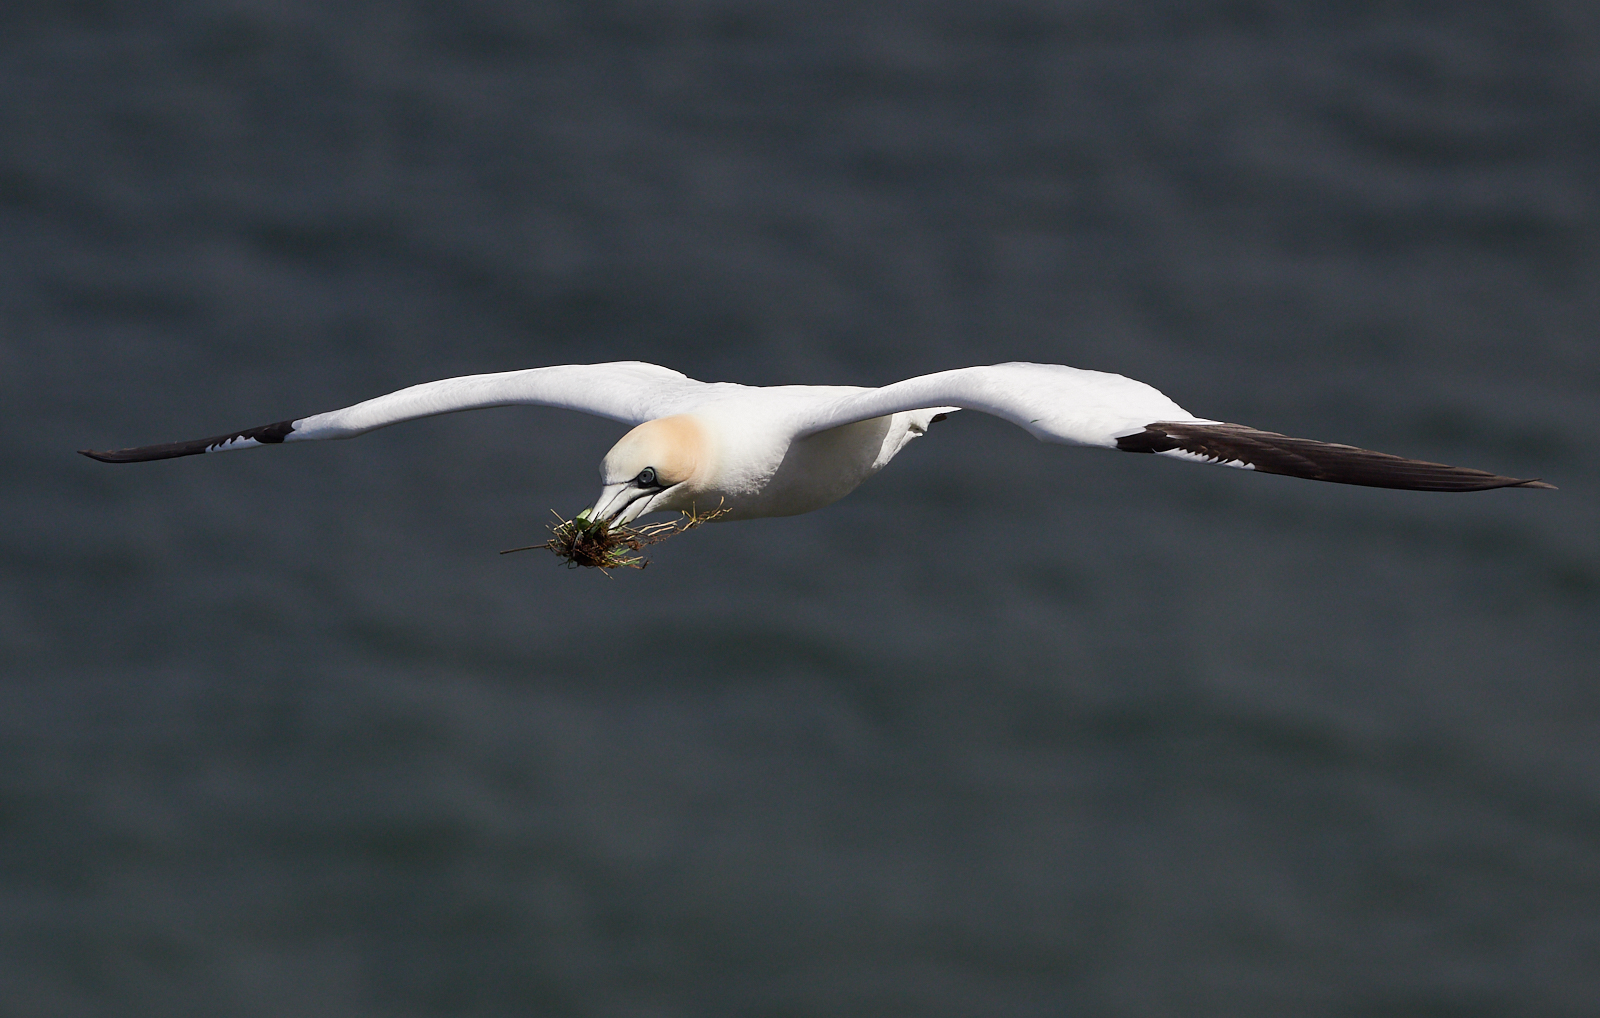 Gannet in flight with nesting material1600x1200 sRGB.jpg